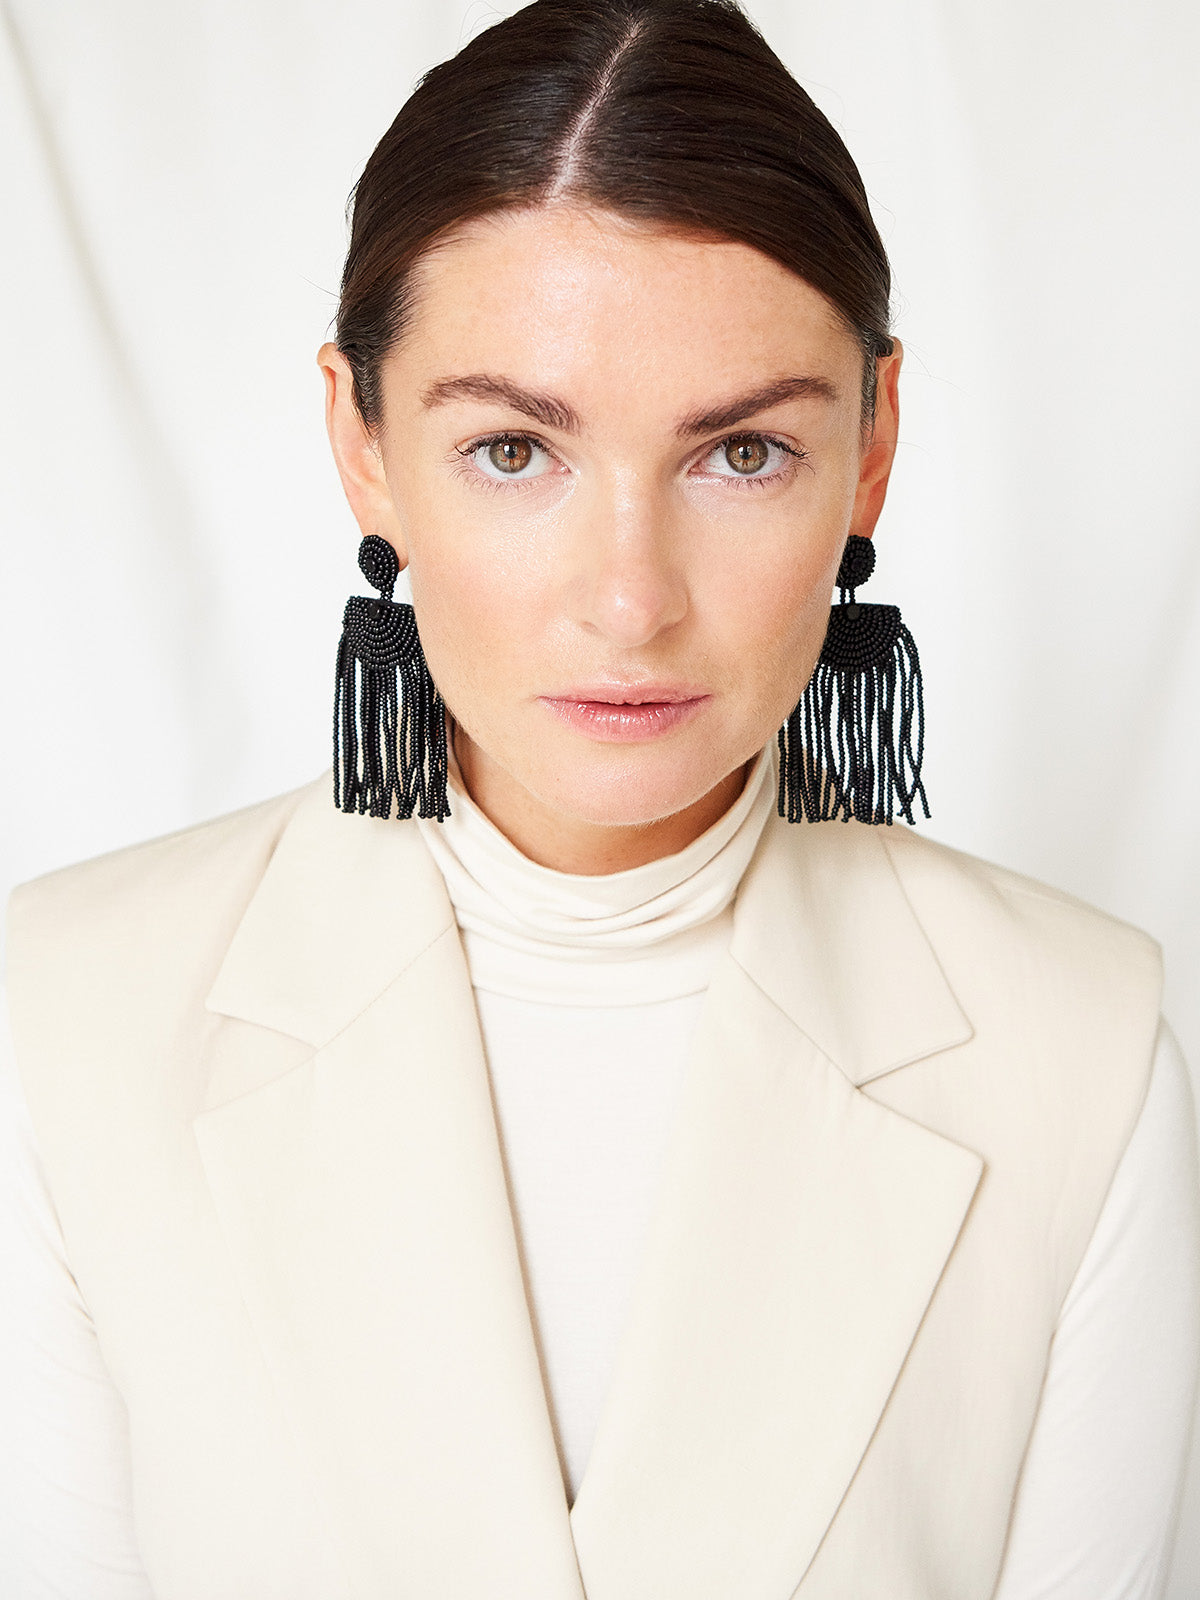 Kifungo Short Tassel Earrings